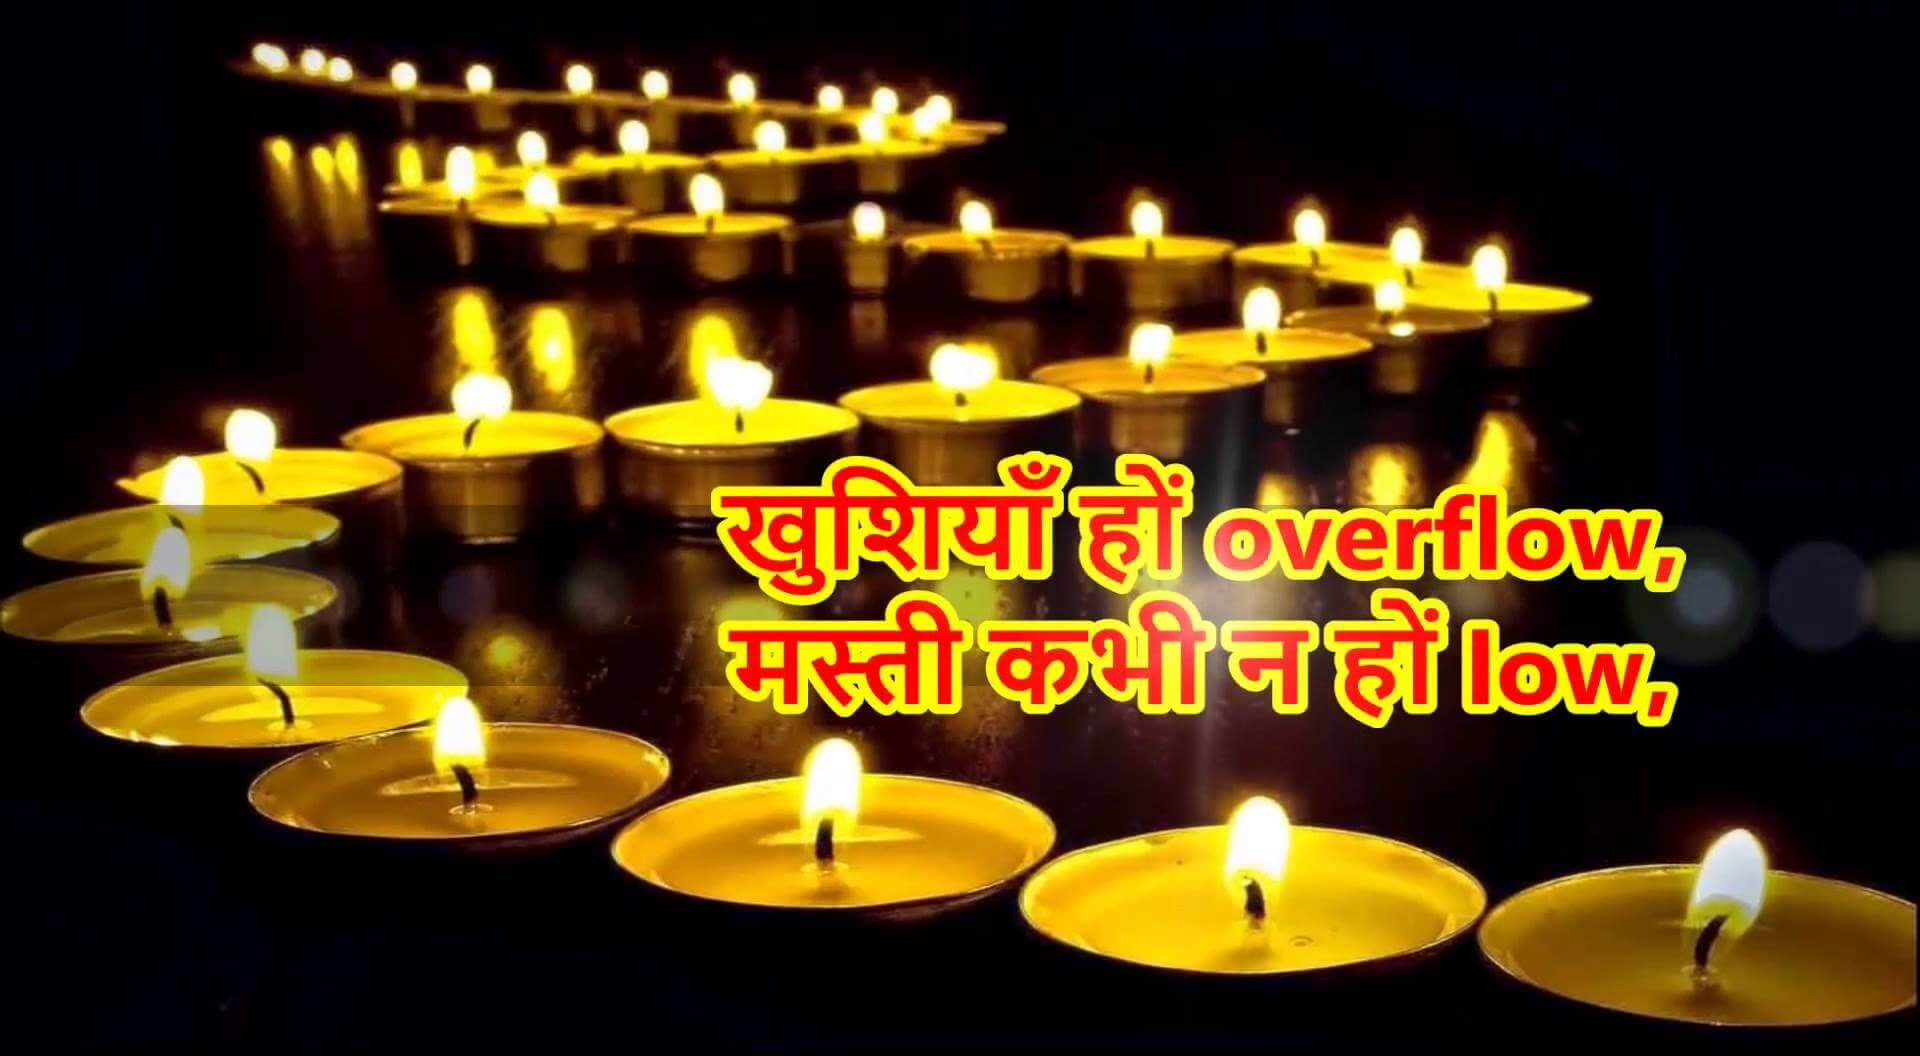 Latest Diwali Wishes Image